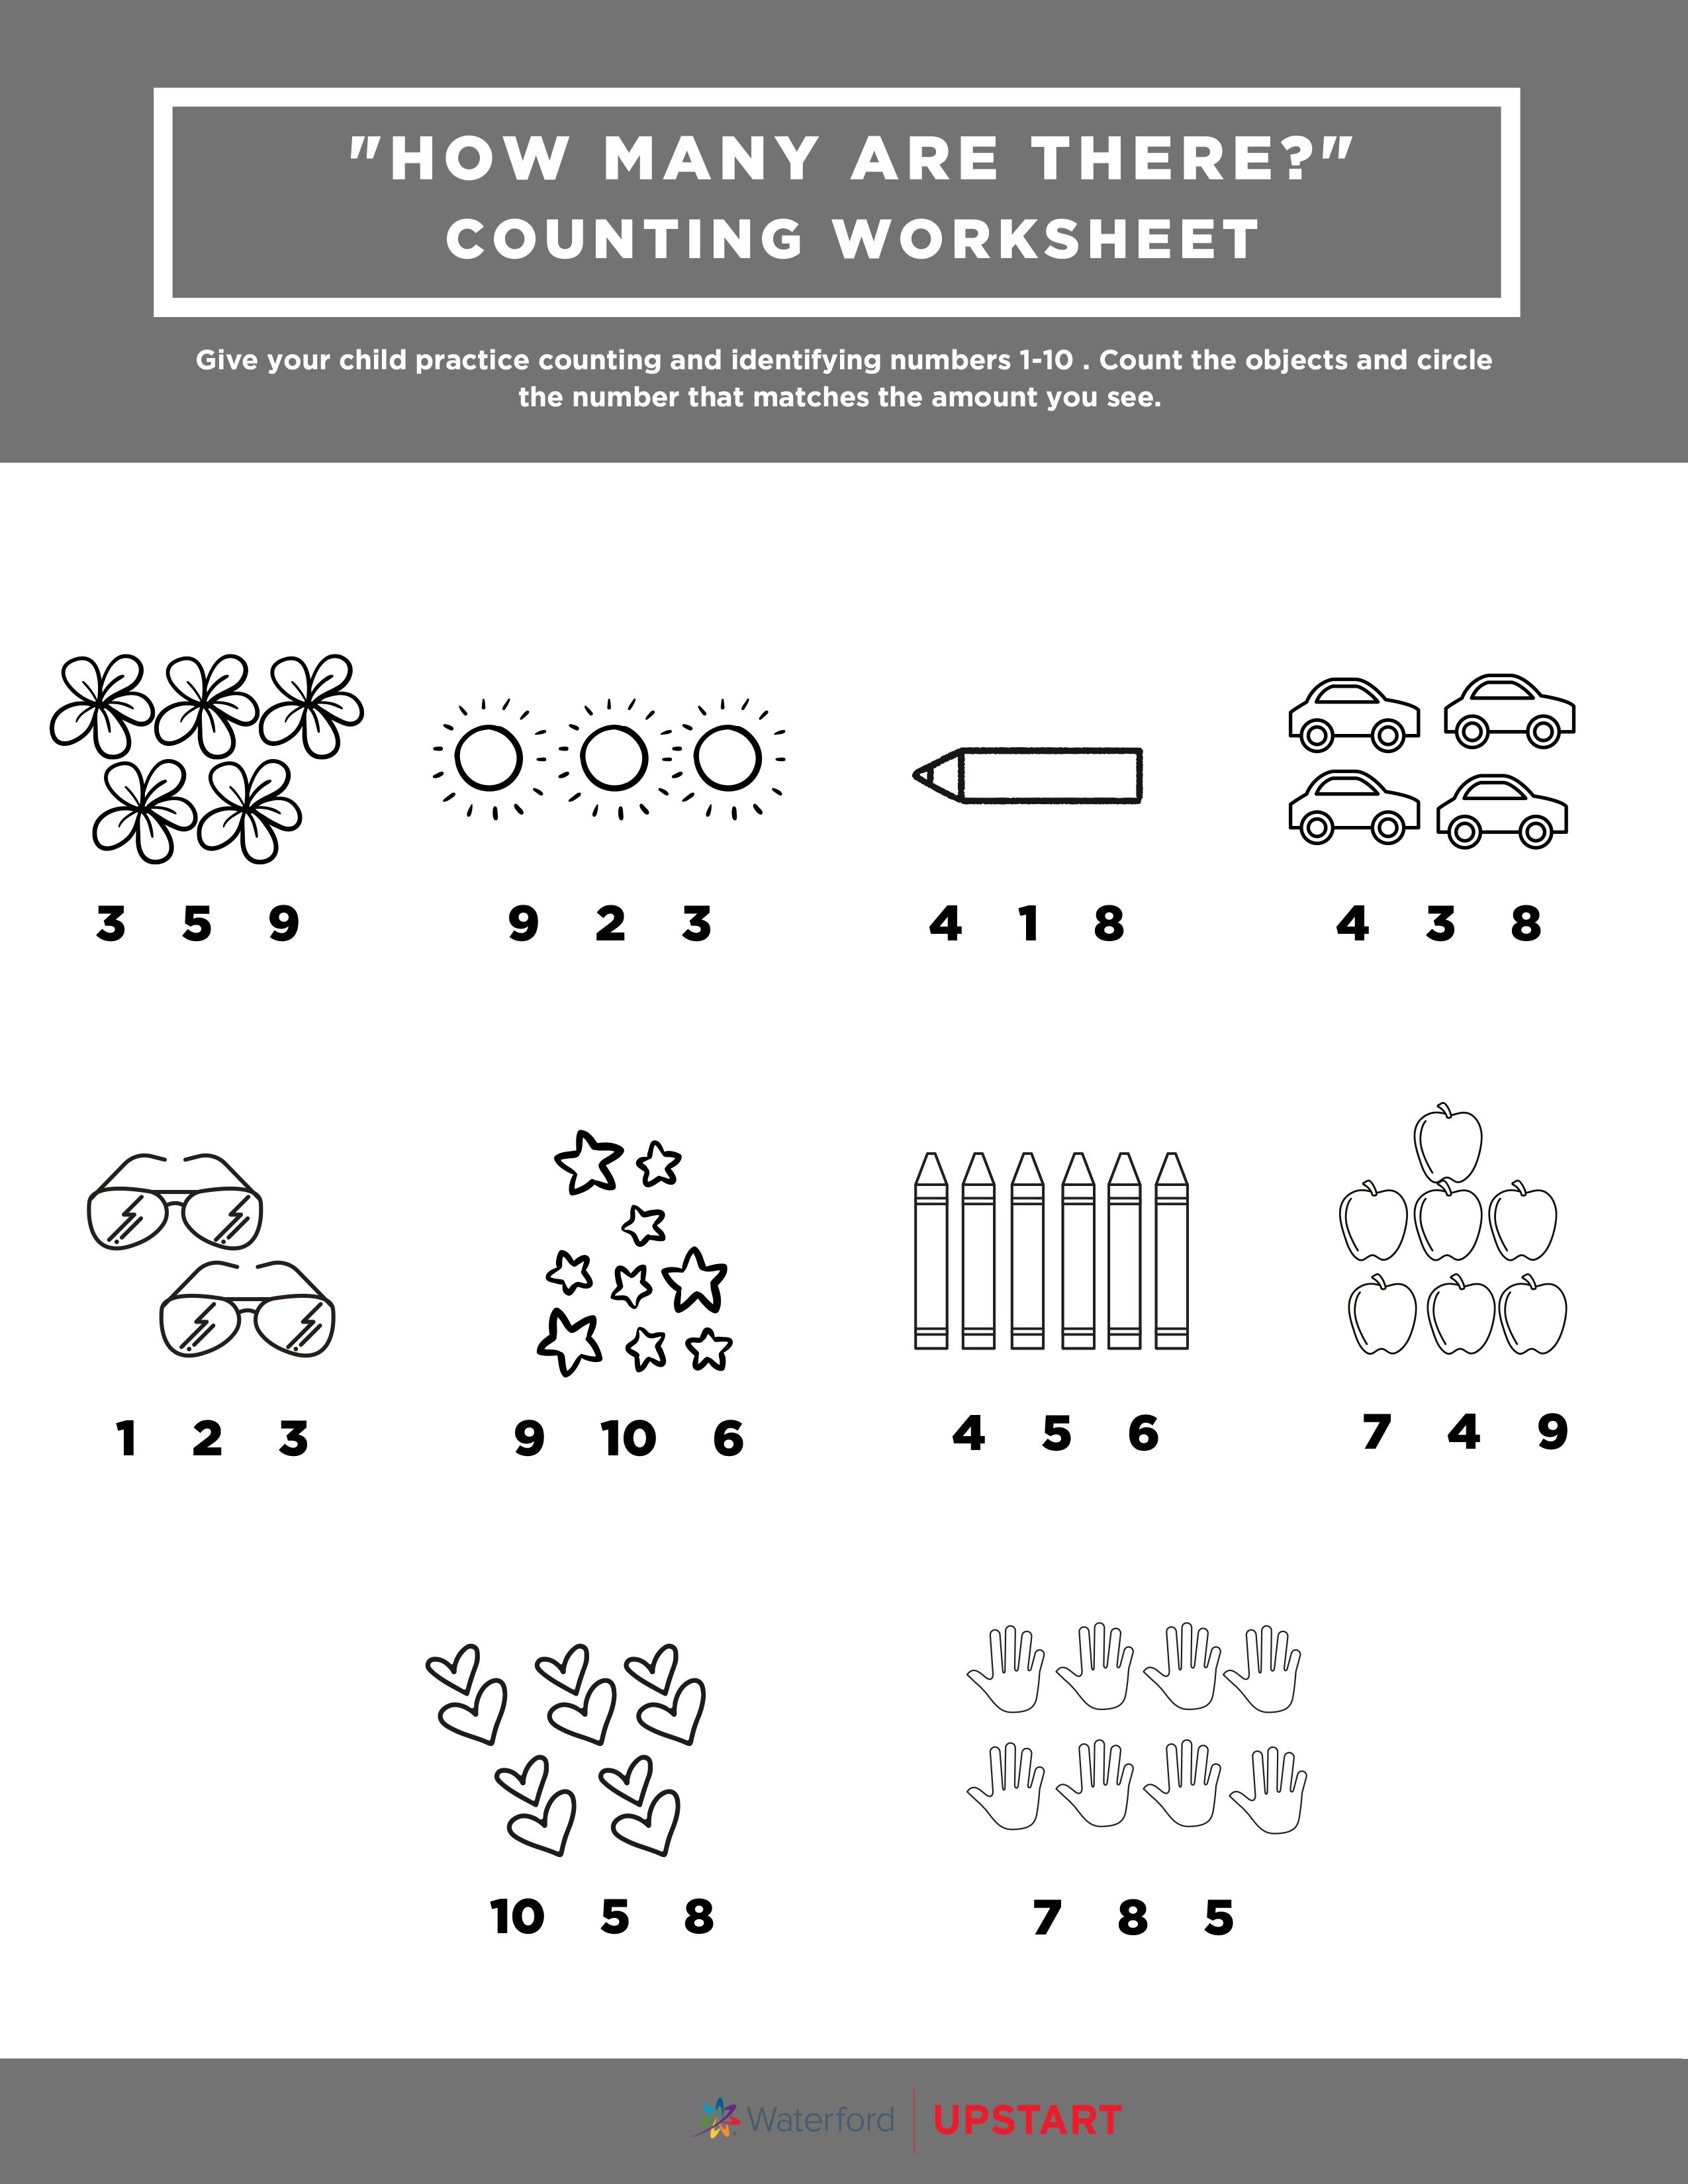 How Many Are There Worksheet Counting Worksheets Stem Learning Activities Stem For Kids [ 3300 x 2550 Pixel ]